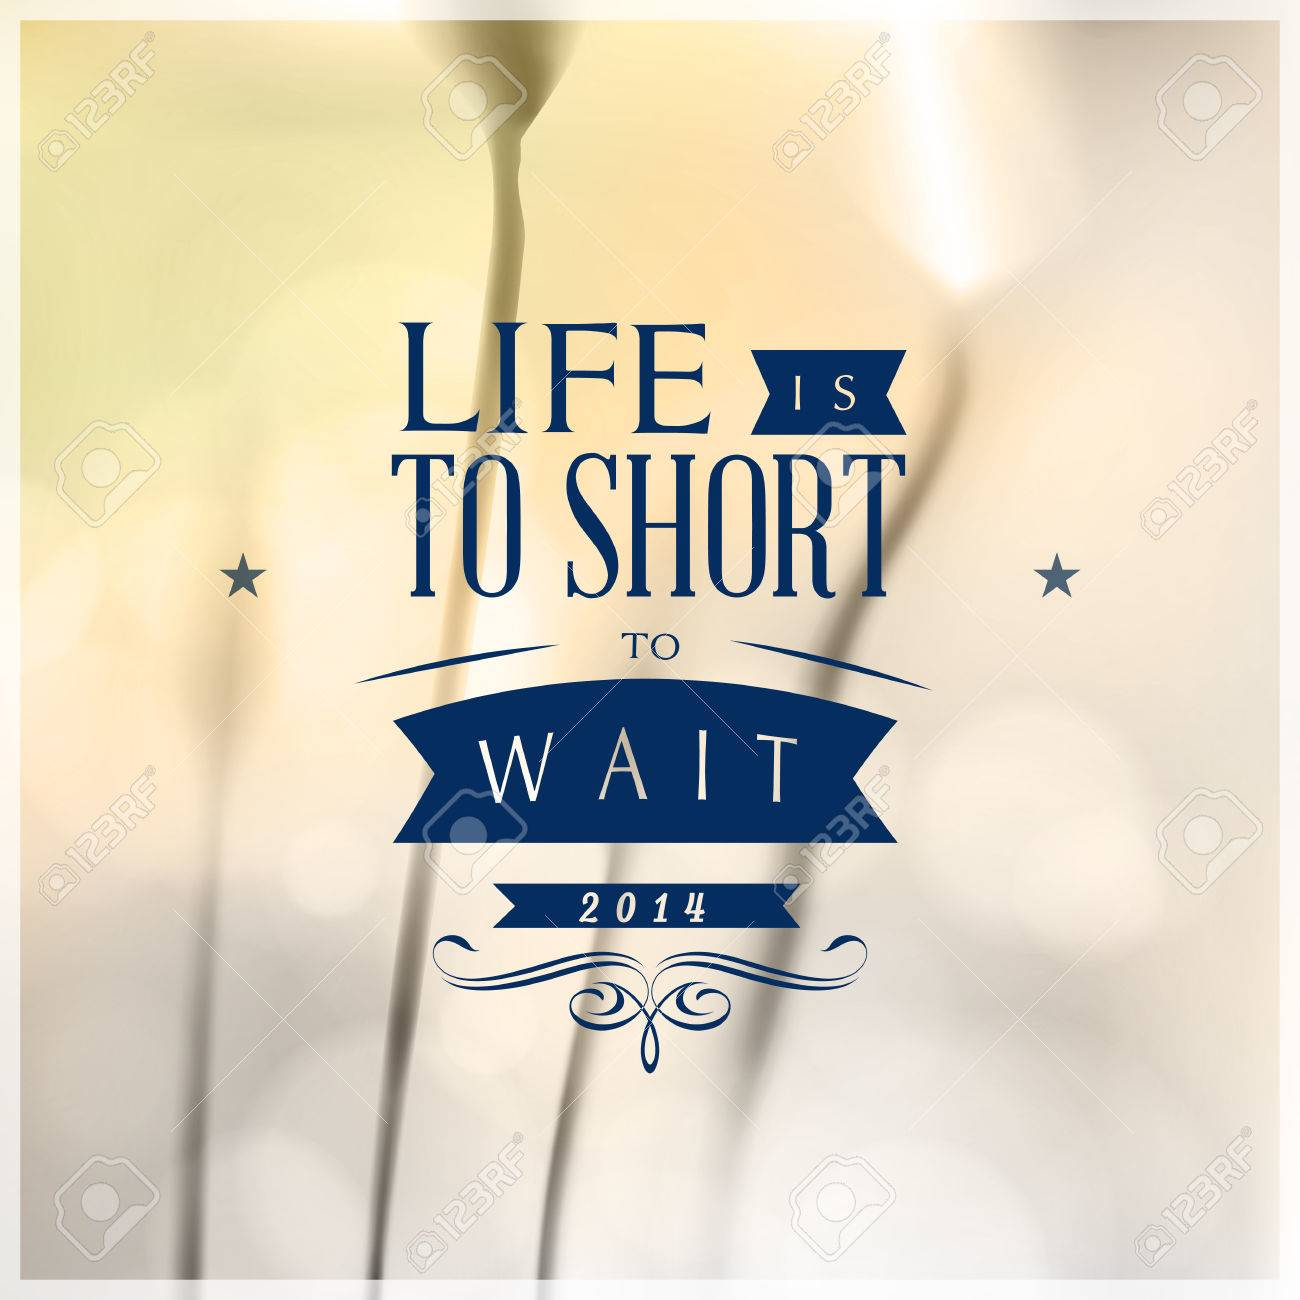 Motivating Quotes Motivating Quotes Life Is To Short To Wait Royalty Free Cliparts